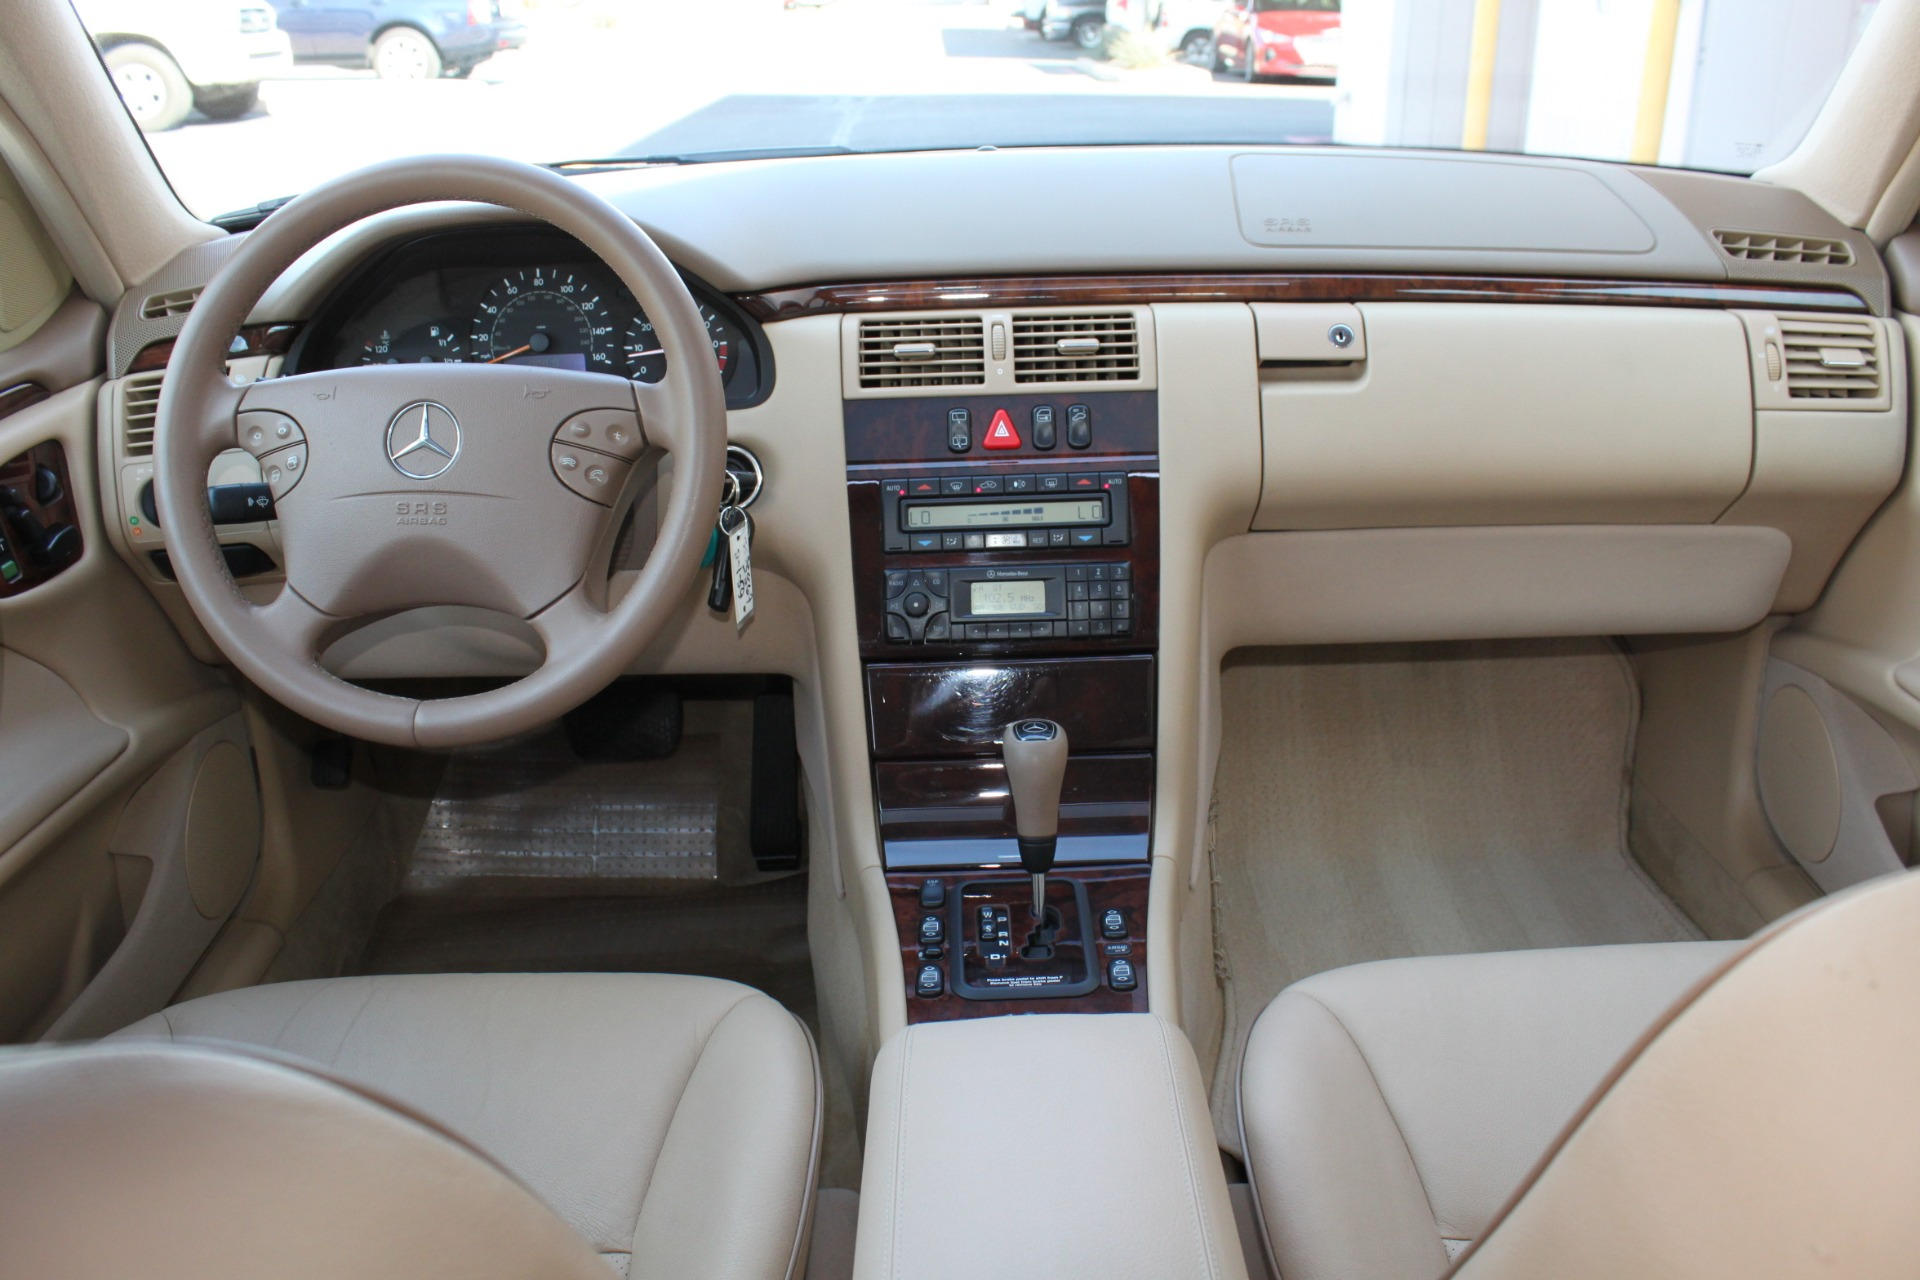 Used-2000-Mercedes-Benz-E-Class-Wagon-vintage